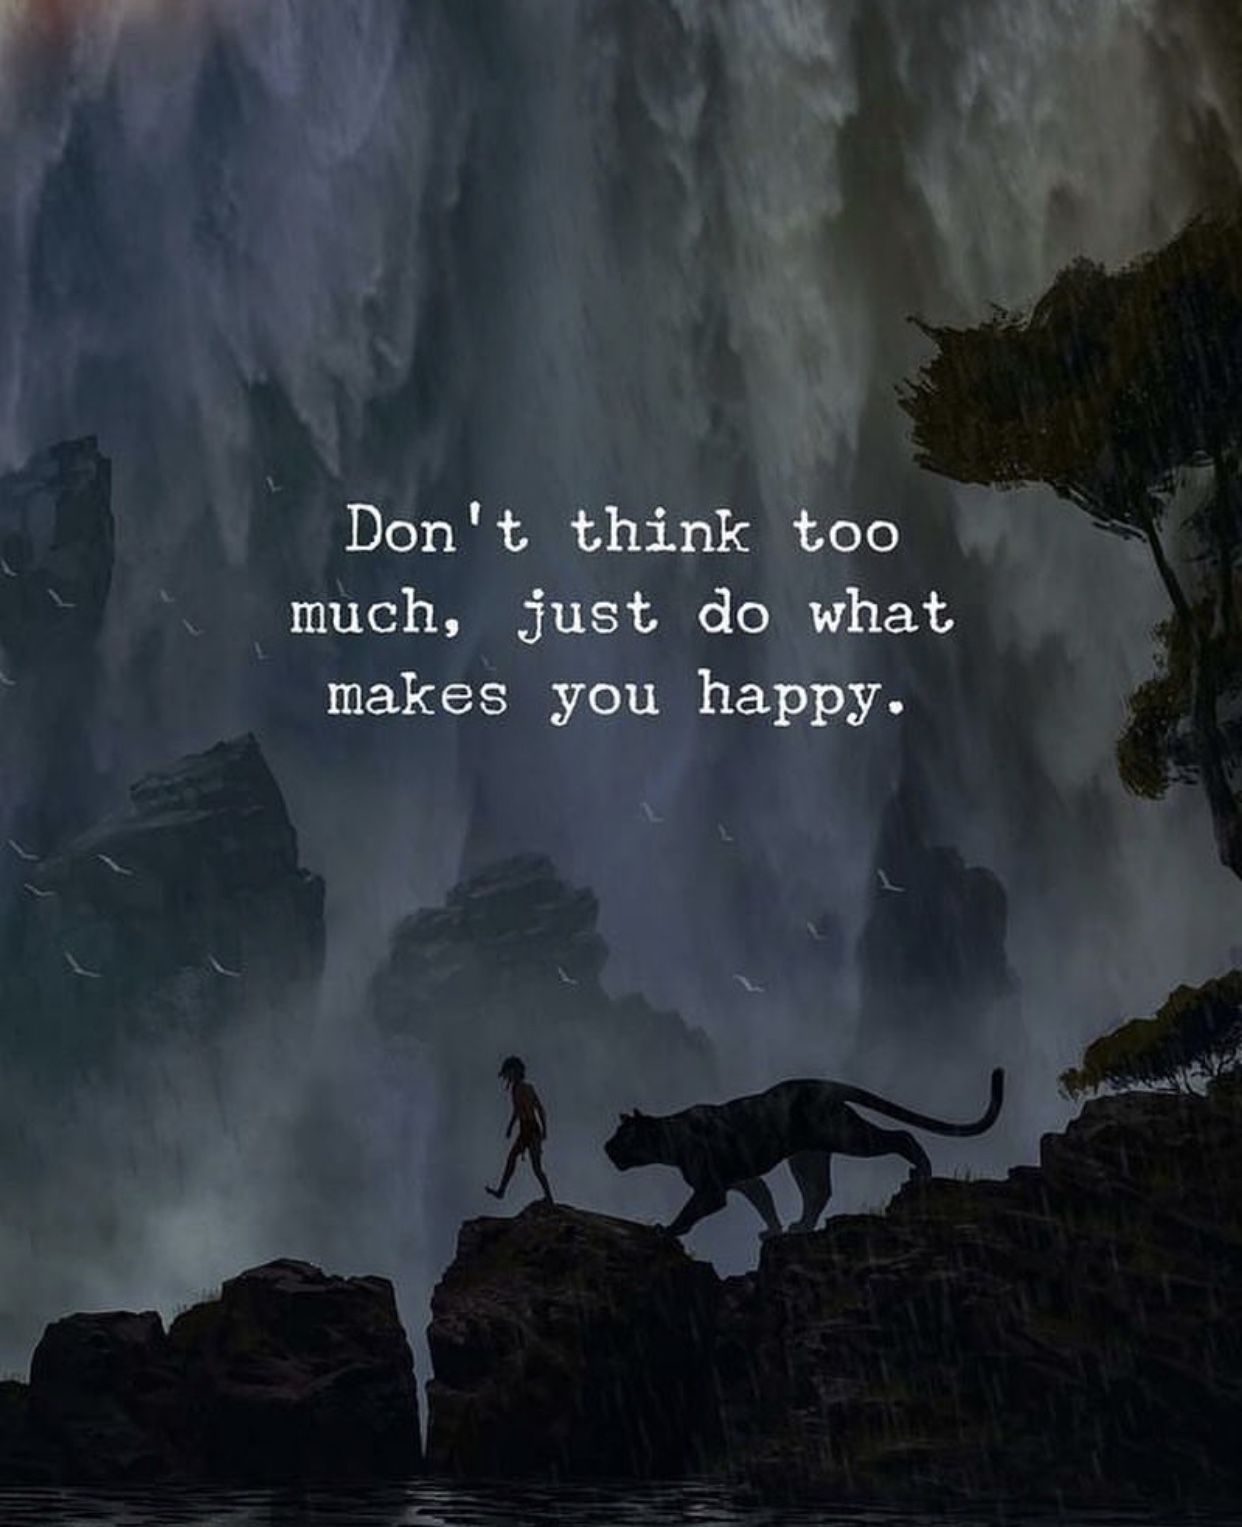 A Great Life Quote If You Ever Find Yourself Thinking Too Much Just Do Something That M Inspirational Quotes Motivation Think Too Much Quotes Waterfall Quotes